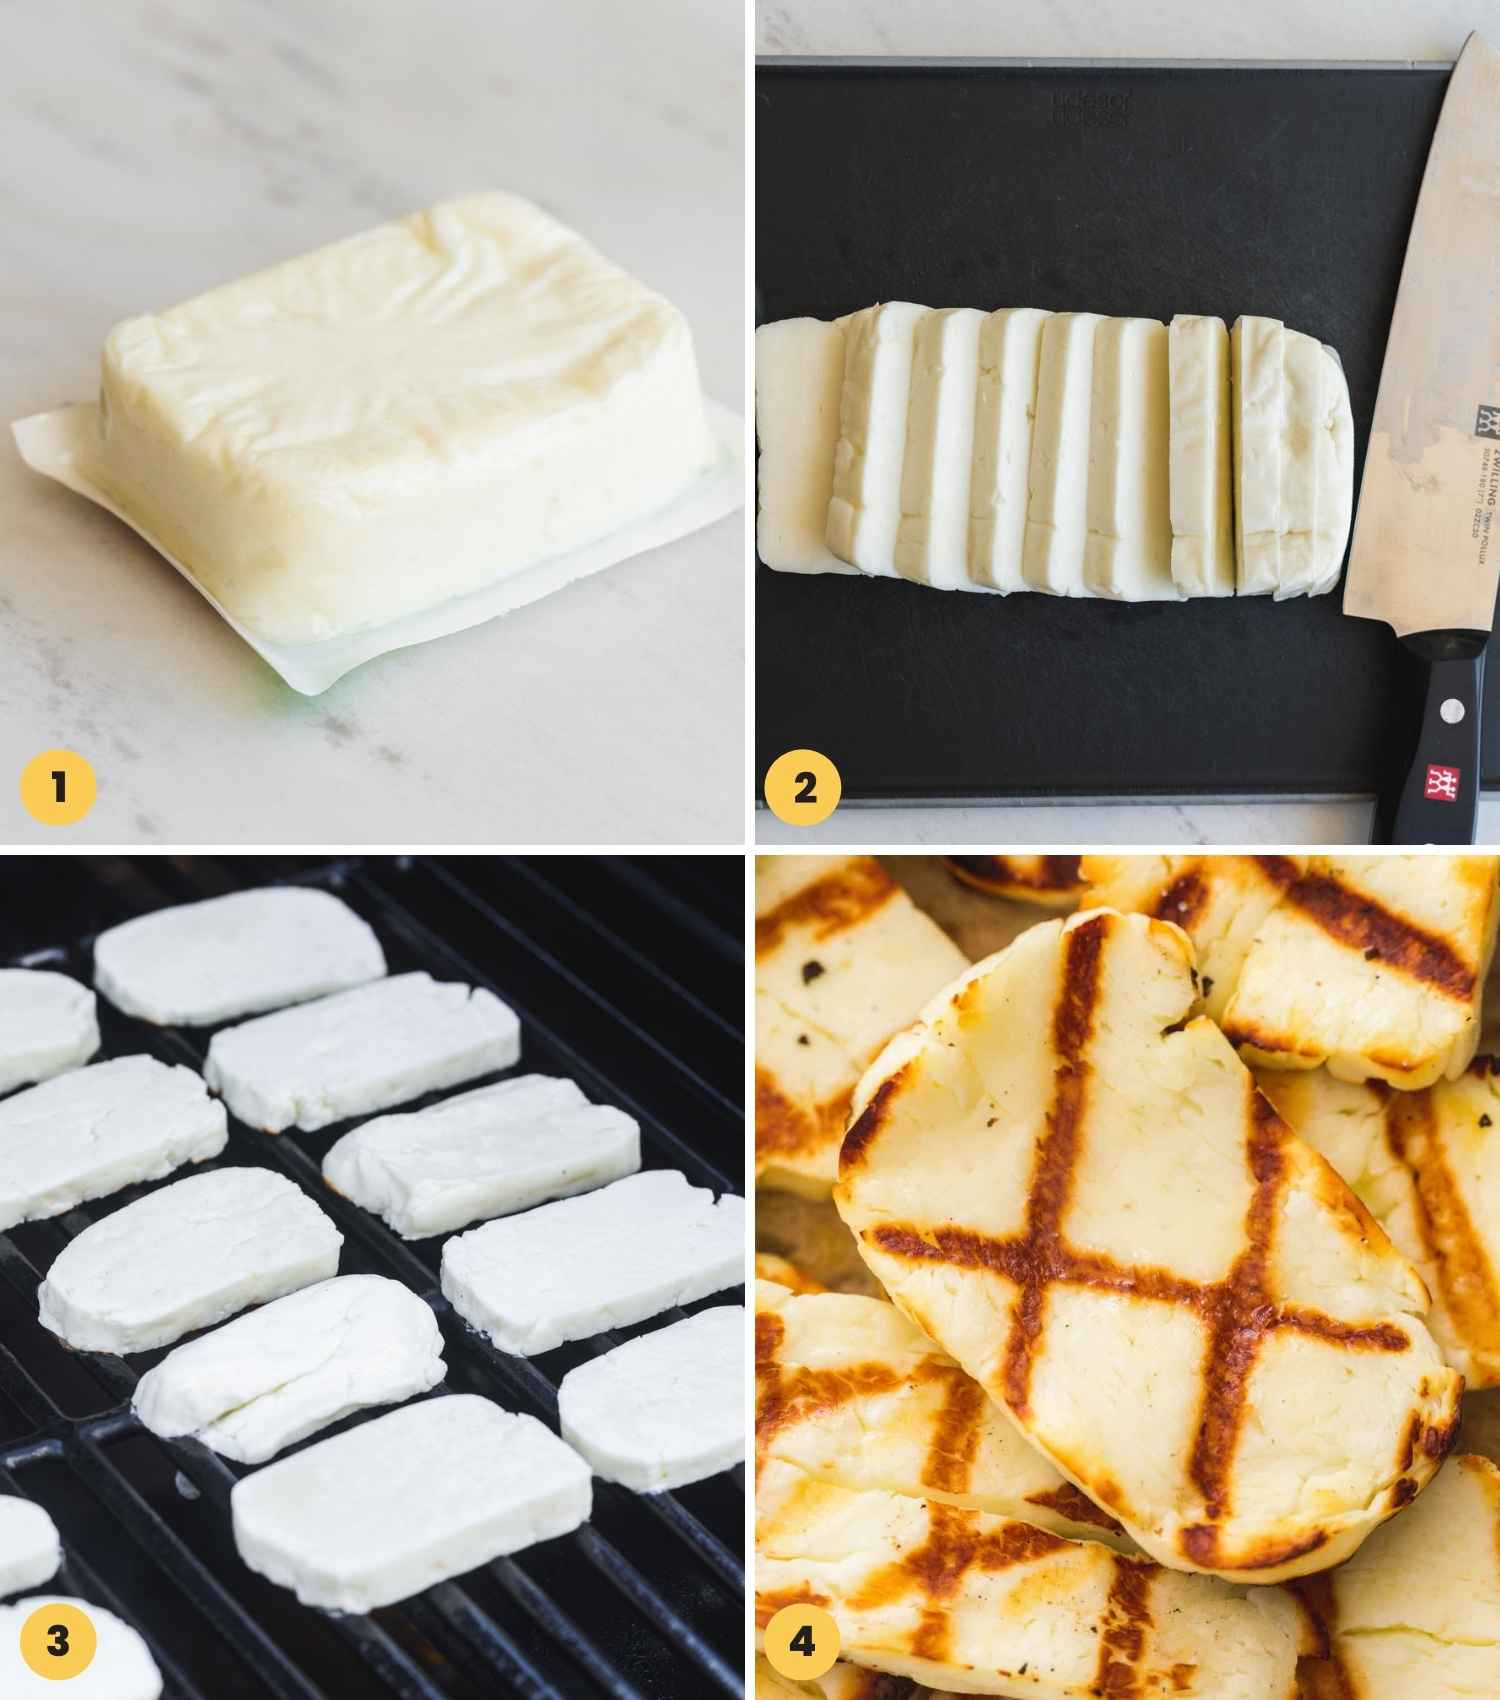 A collage with 4 images on how to slice a block of halloumi and then grill it on an outdoor grill